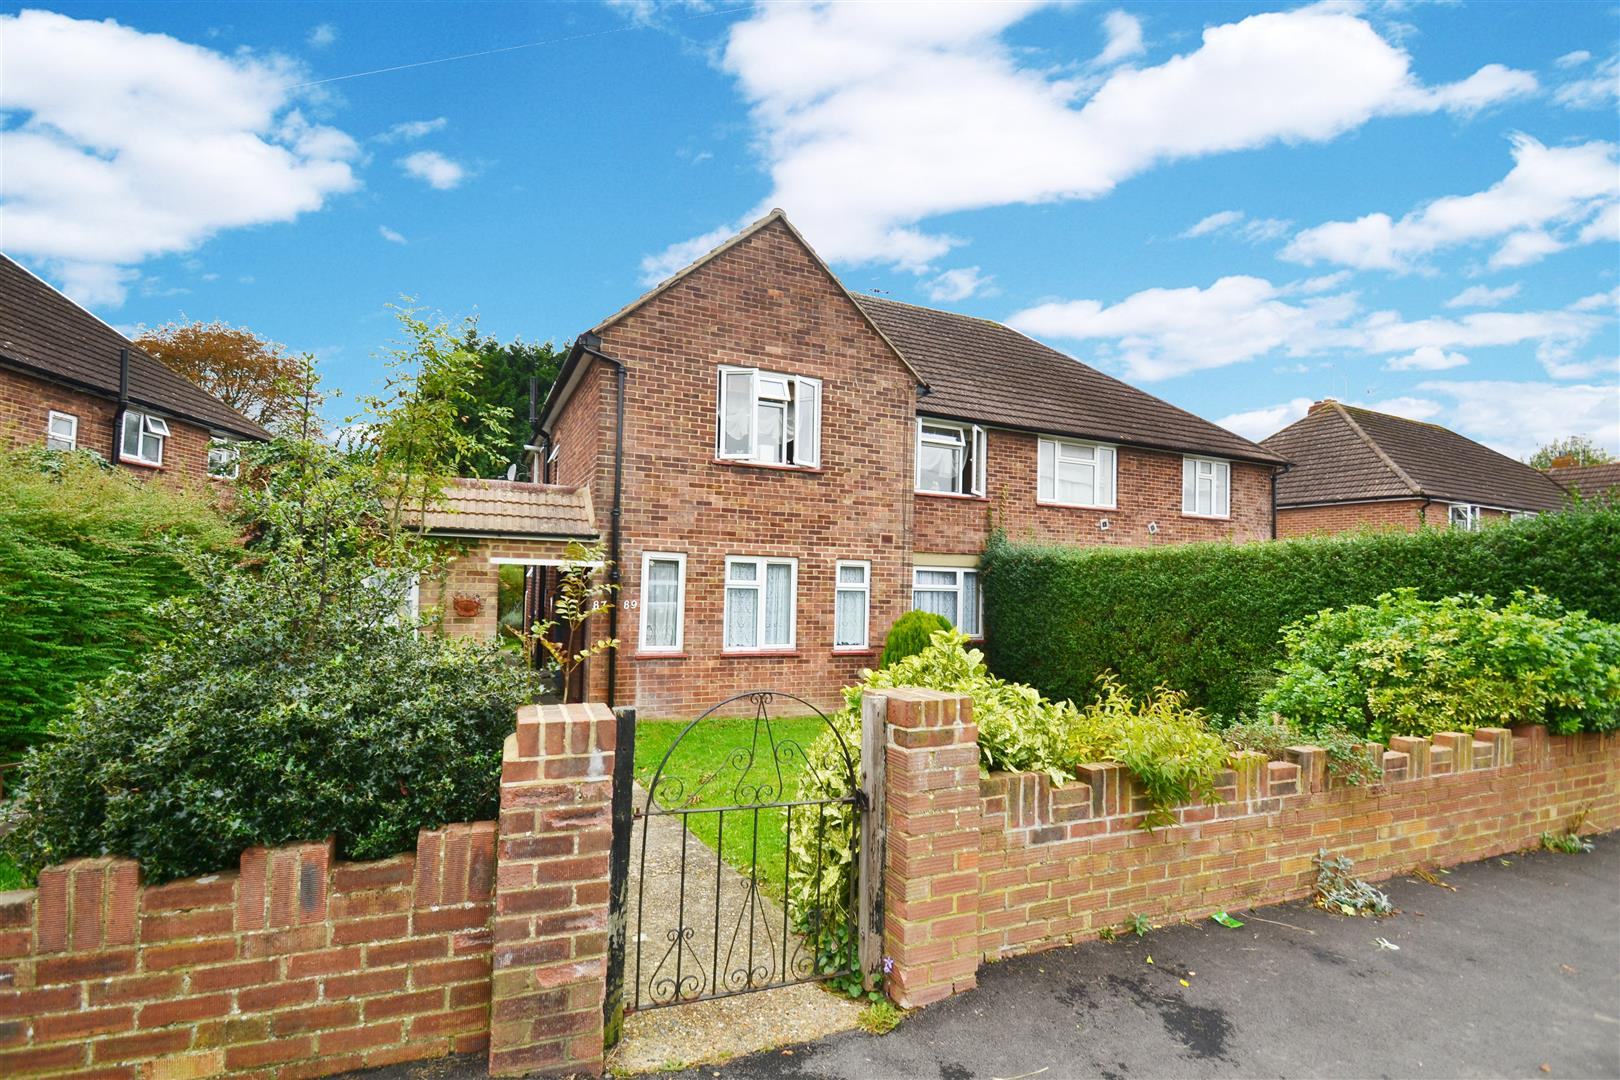 2 Bedrooms Maisonette Flat for sale in The Crescent, Horley